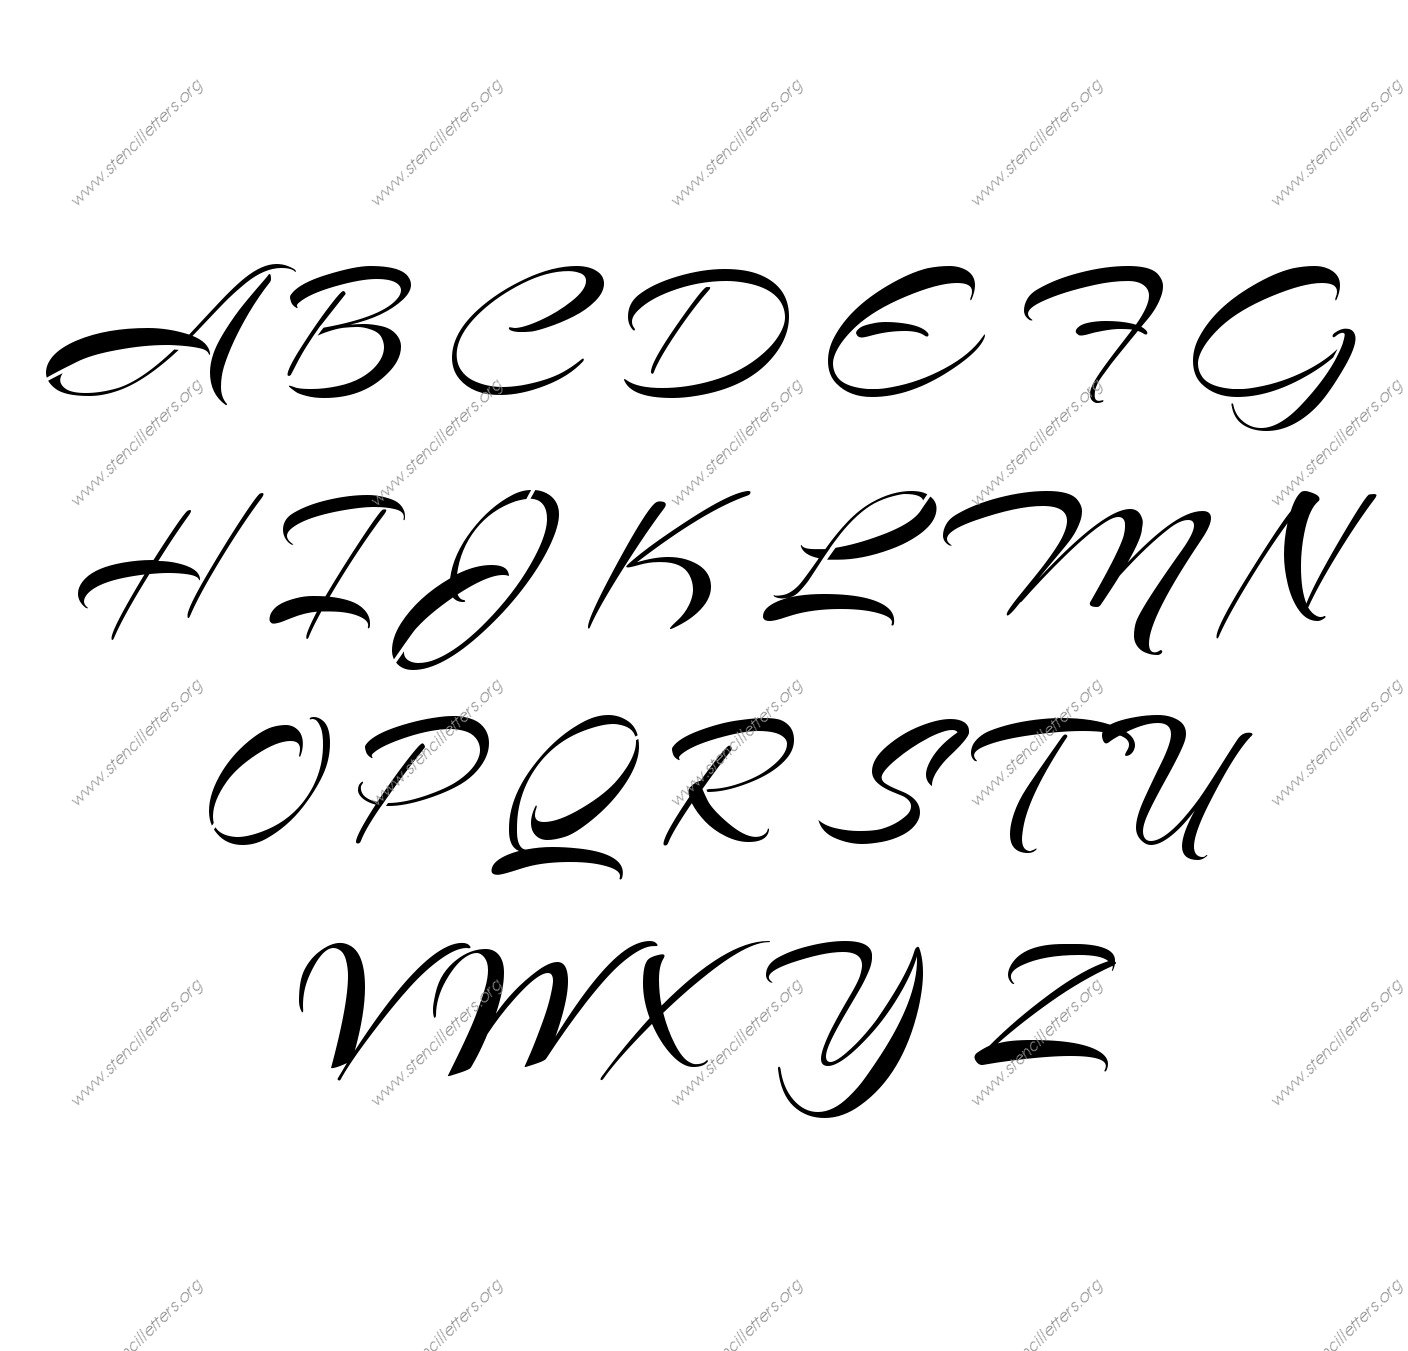 Brushed Cursive A to Z uppercase letter stencils